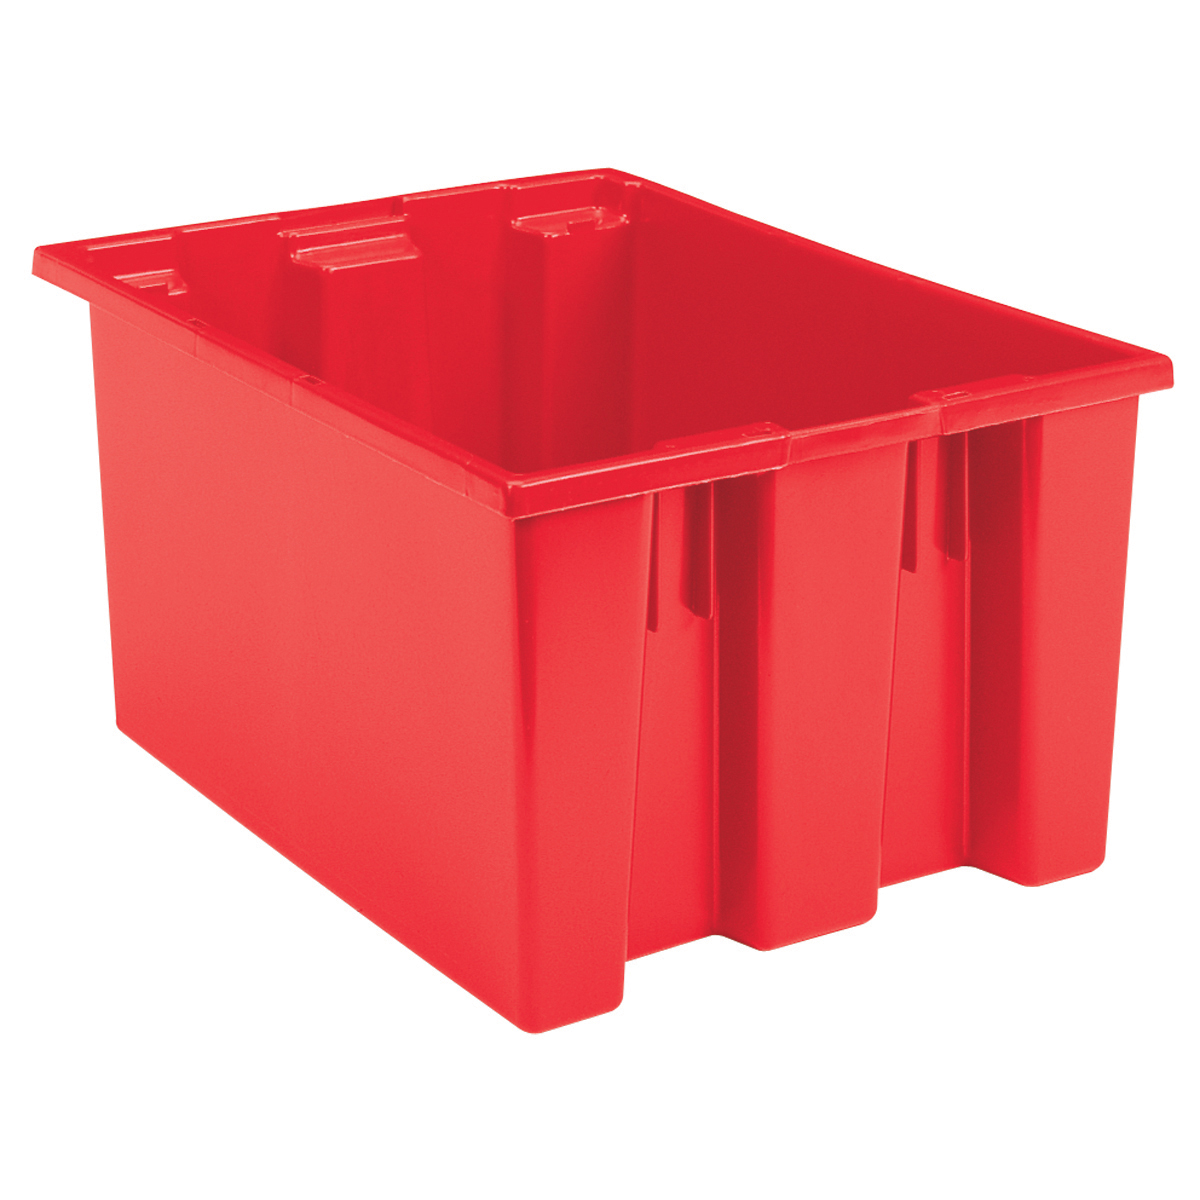 Nest & Stack Tote 23-1/2 x 19-1/2 x 13, Red (35230RED).  This item sold in carton quantities of 3.